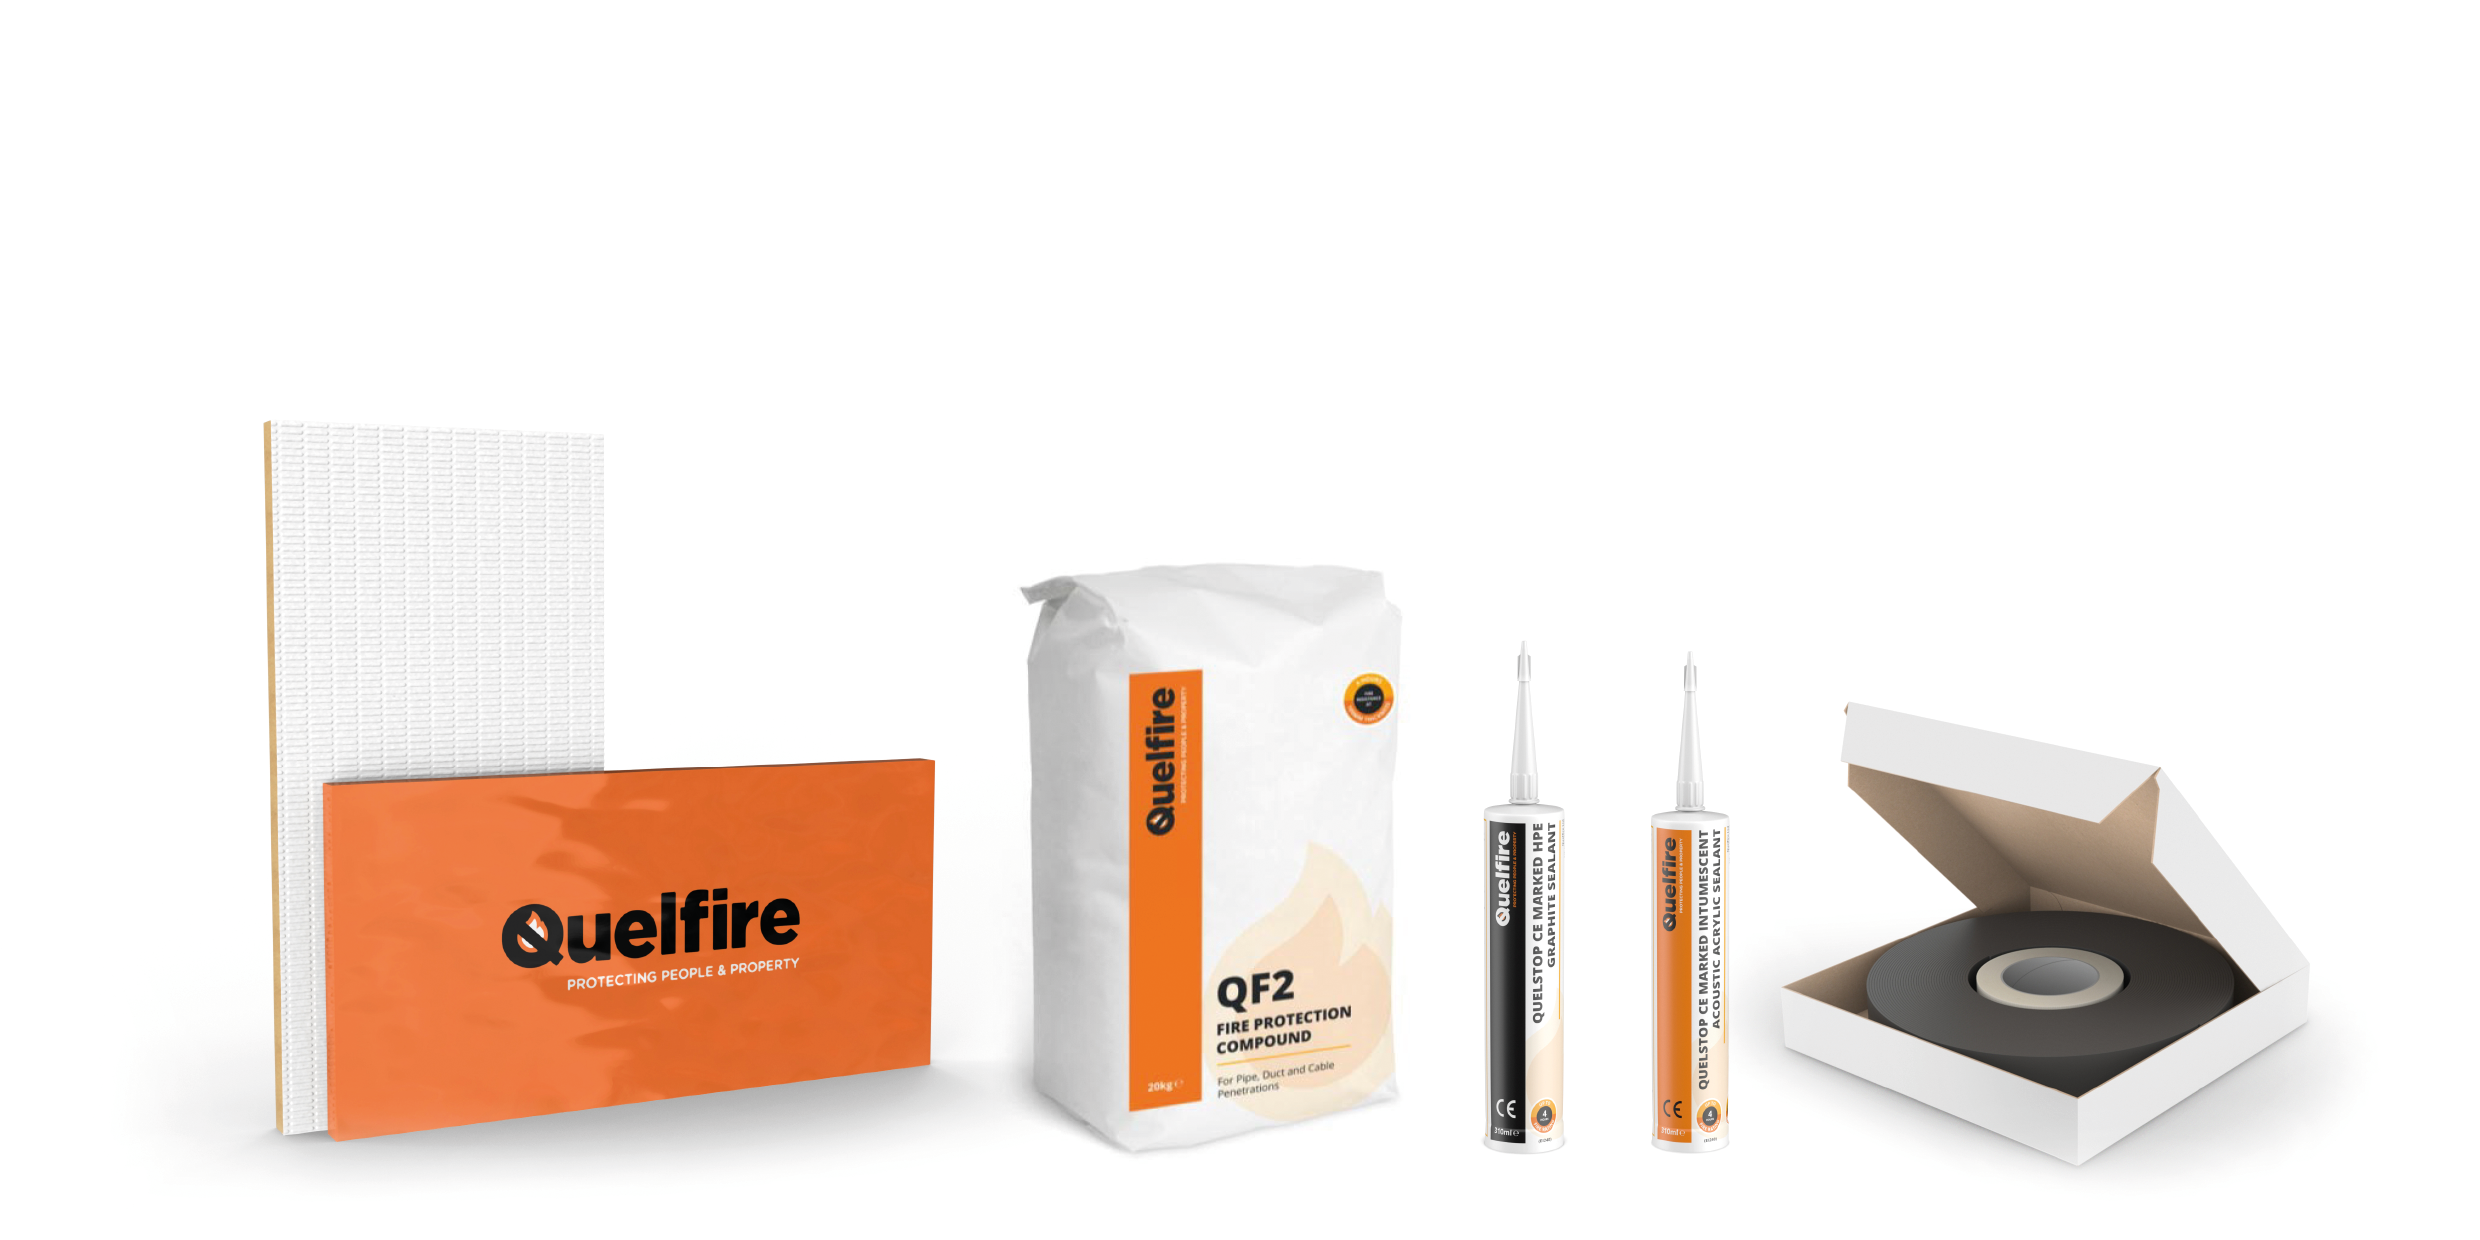 Quelfire product bundle